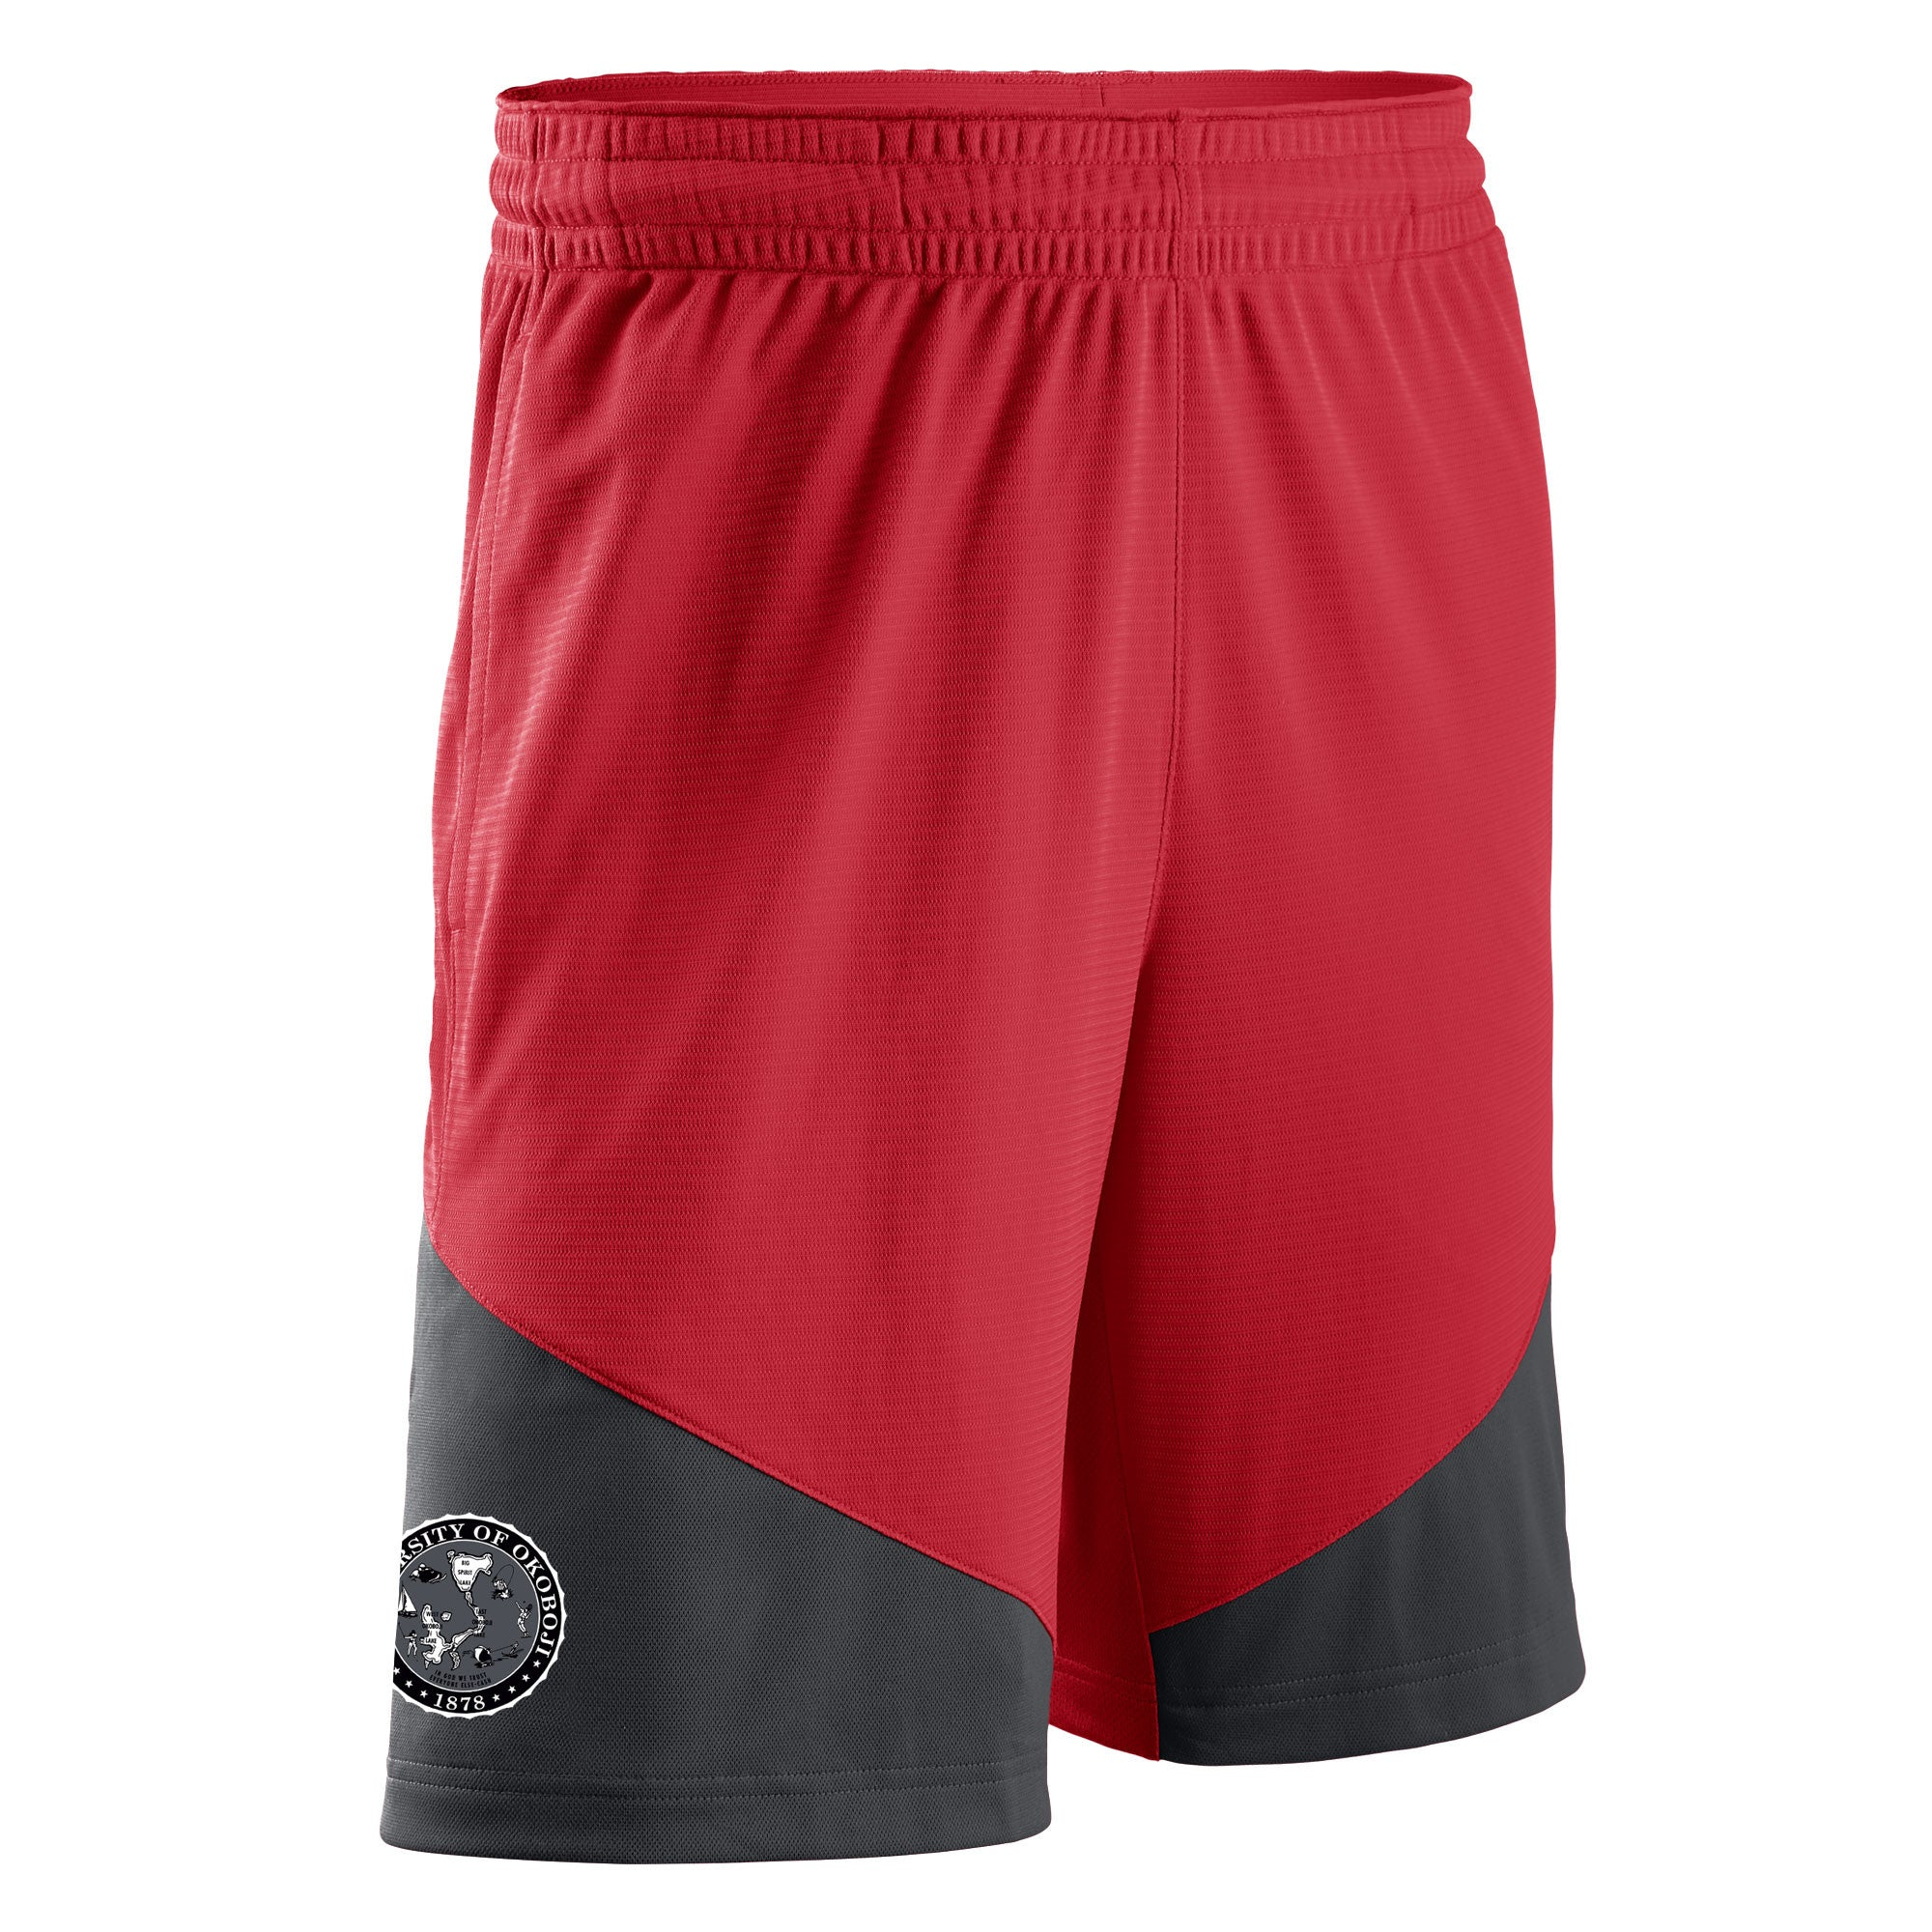 University of Okoboji Classic Nike Shorts - Red